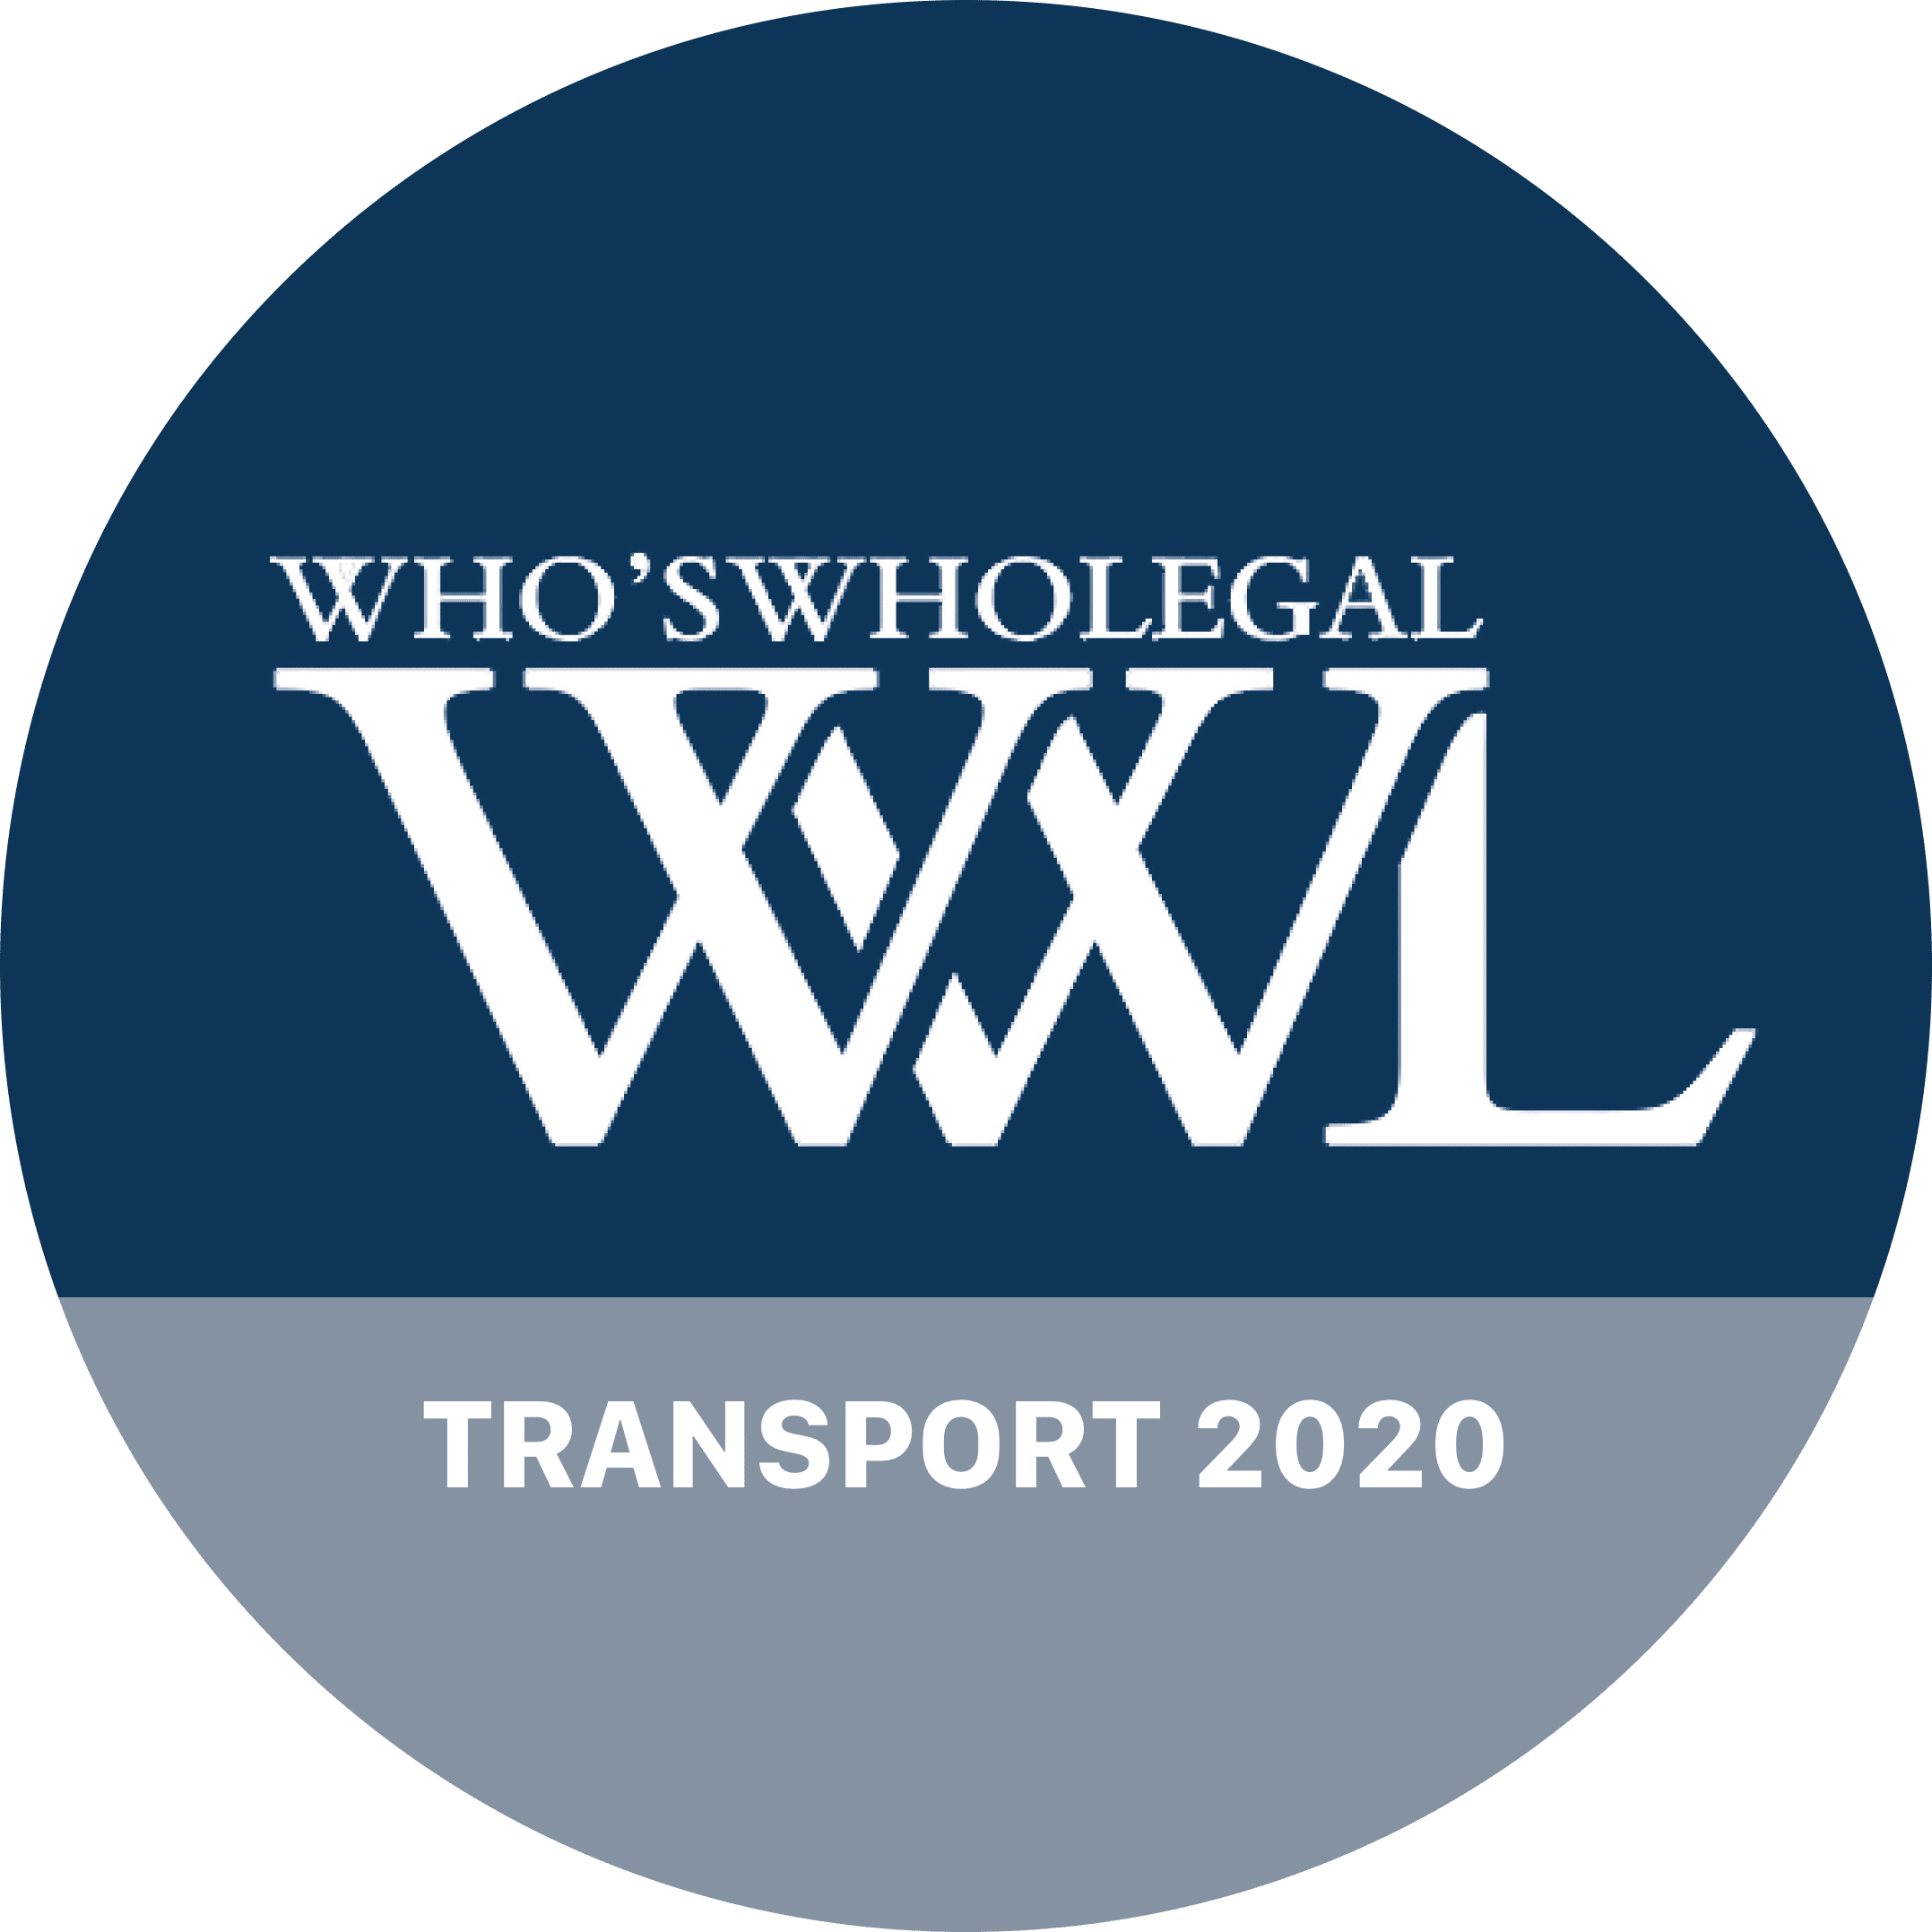 https://maritime.law/wp-content/uploads/2021/04/badge-whos-who-legal-transport-2020.png